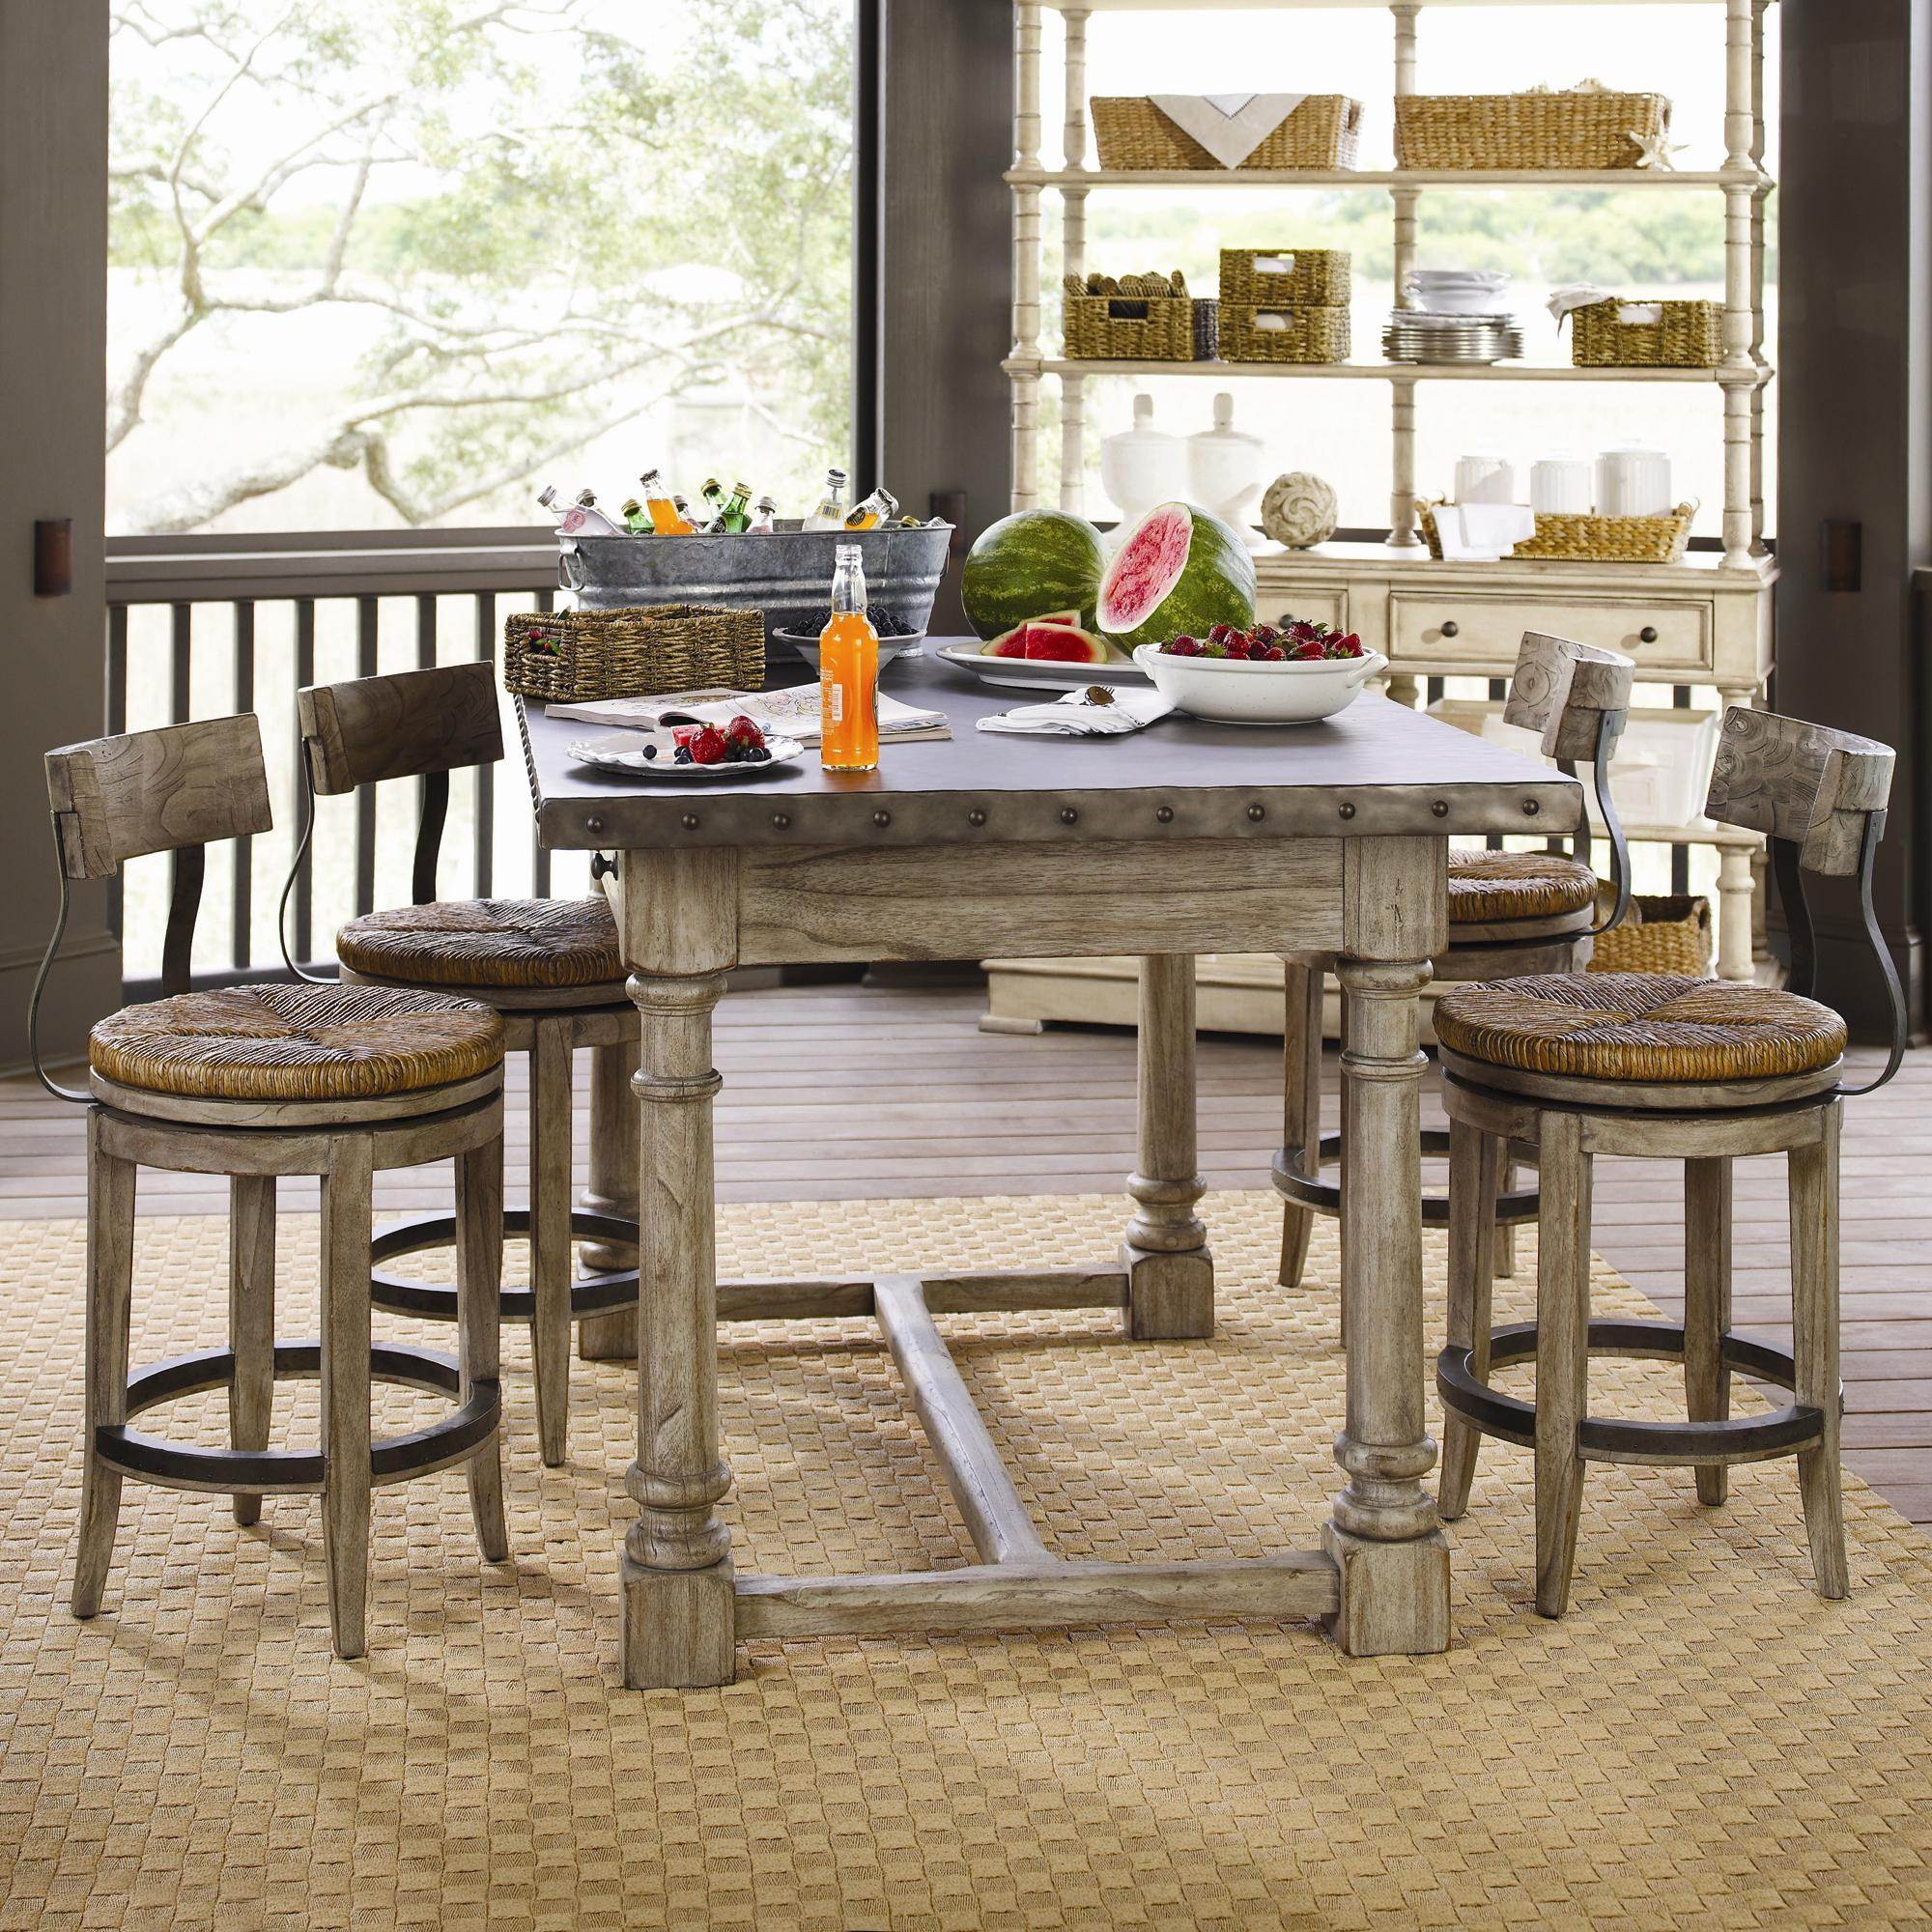 Lexington Twilight Bay 5 Piece Shelter Island Bistro Table